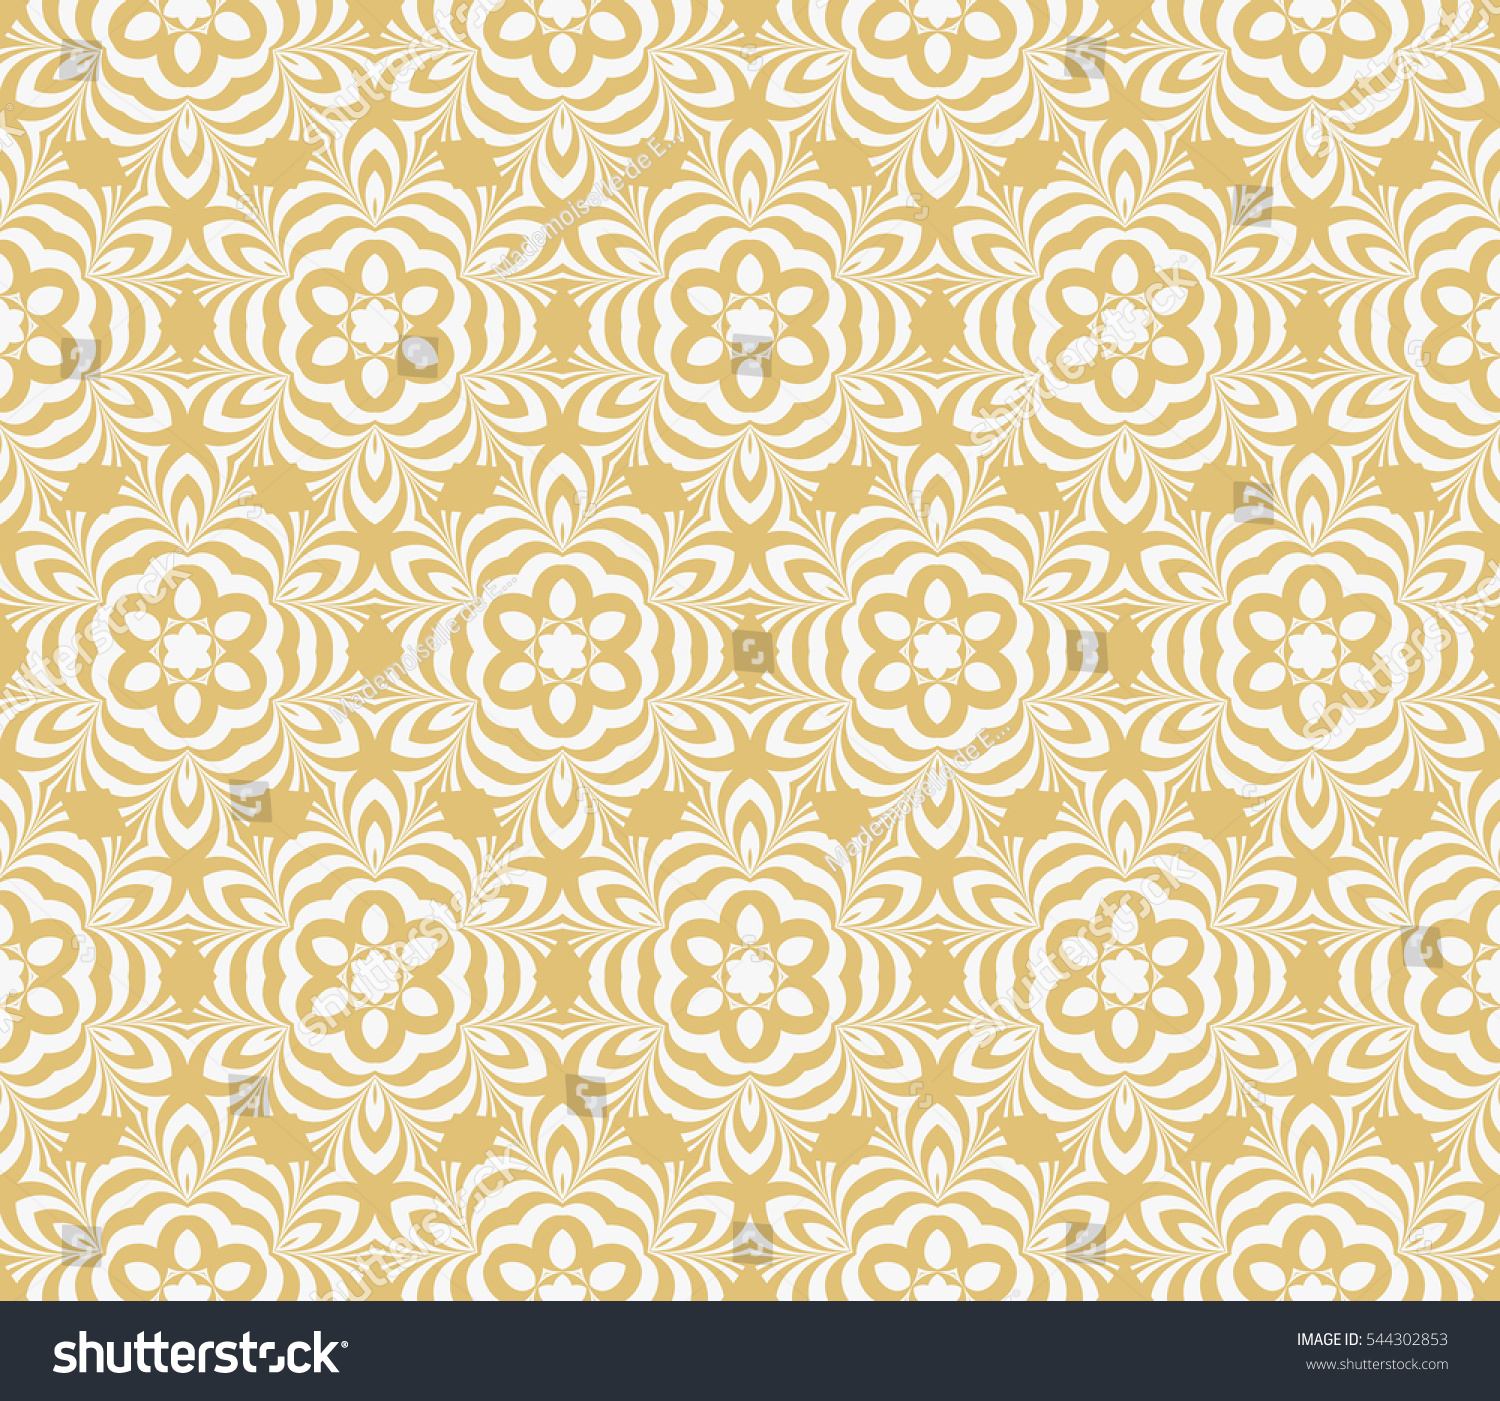 Gold White Color Seamless Floral Geometric Stock Illustration